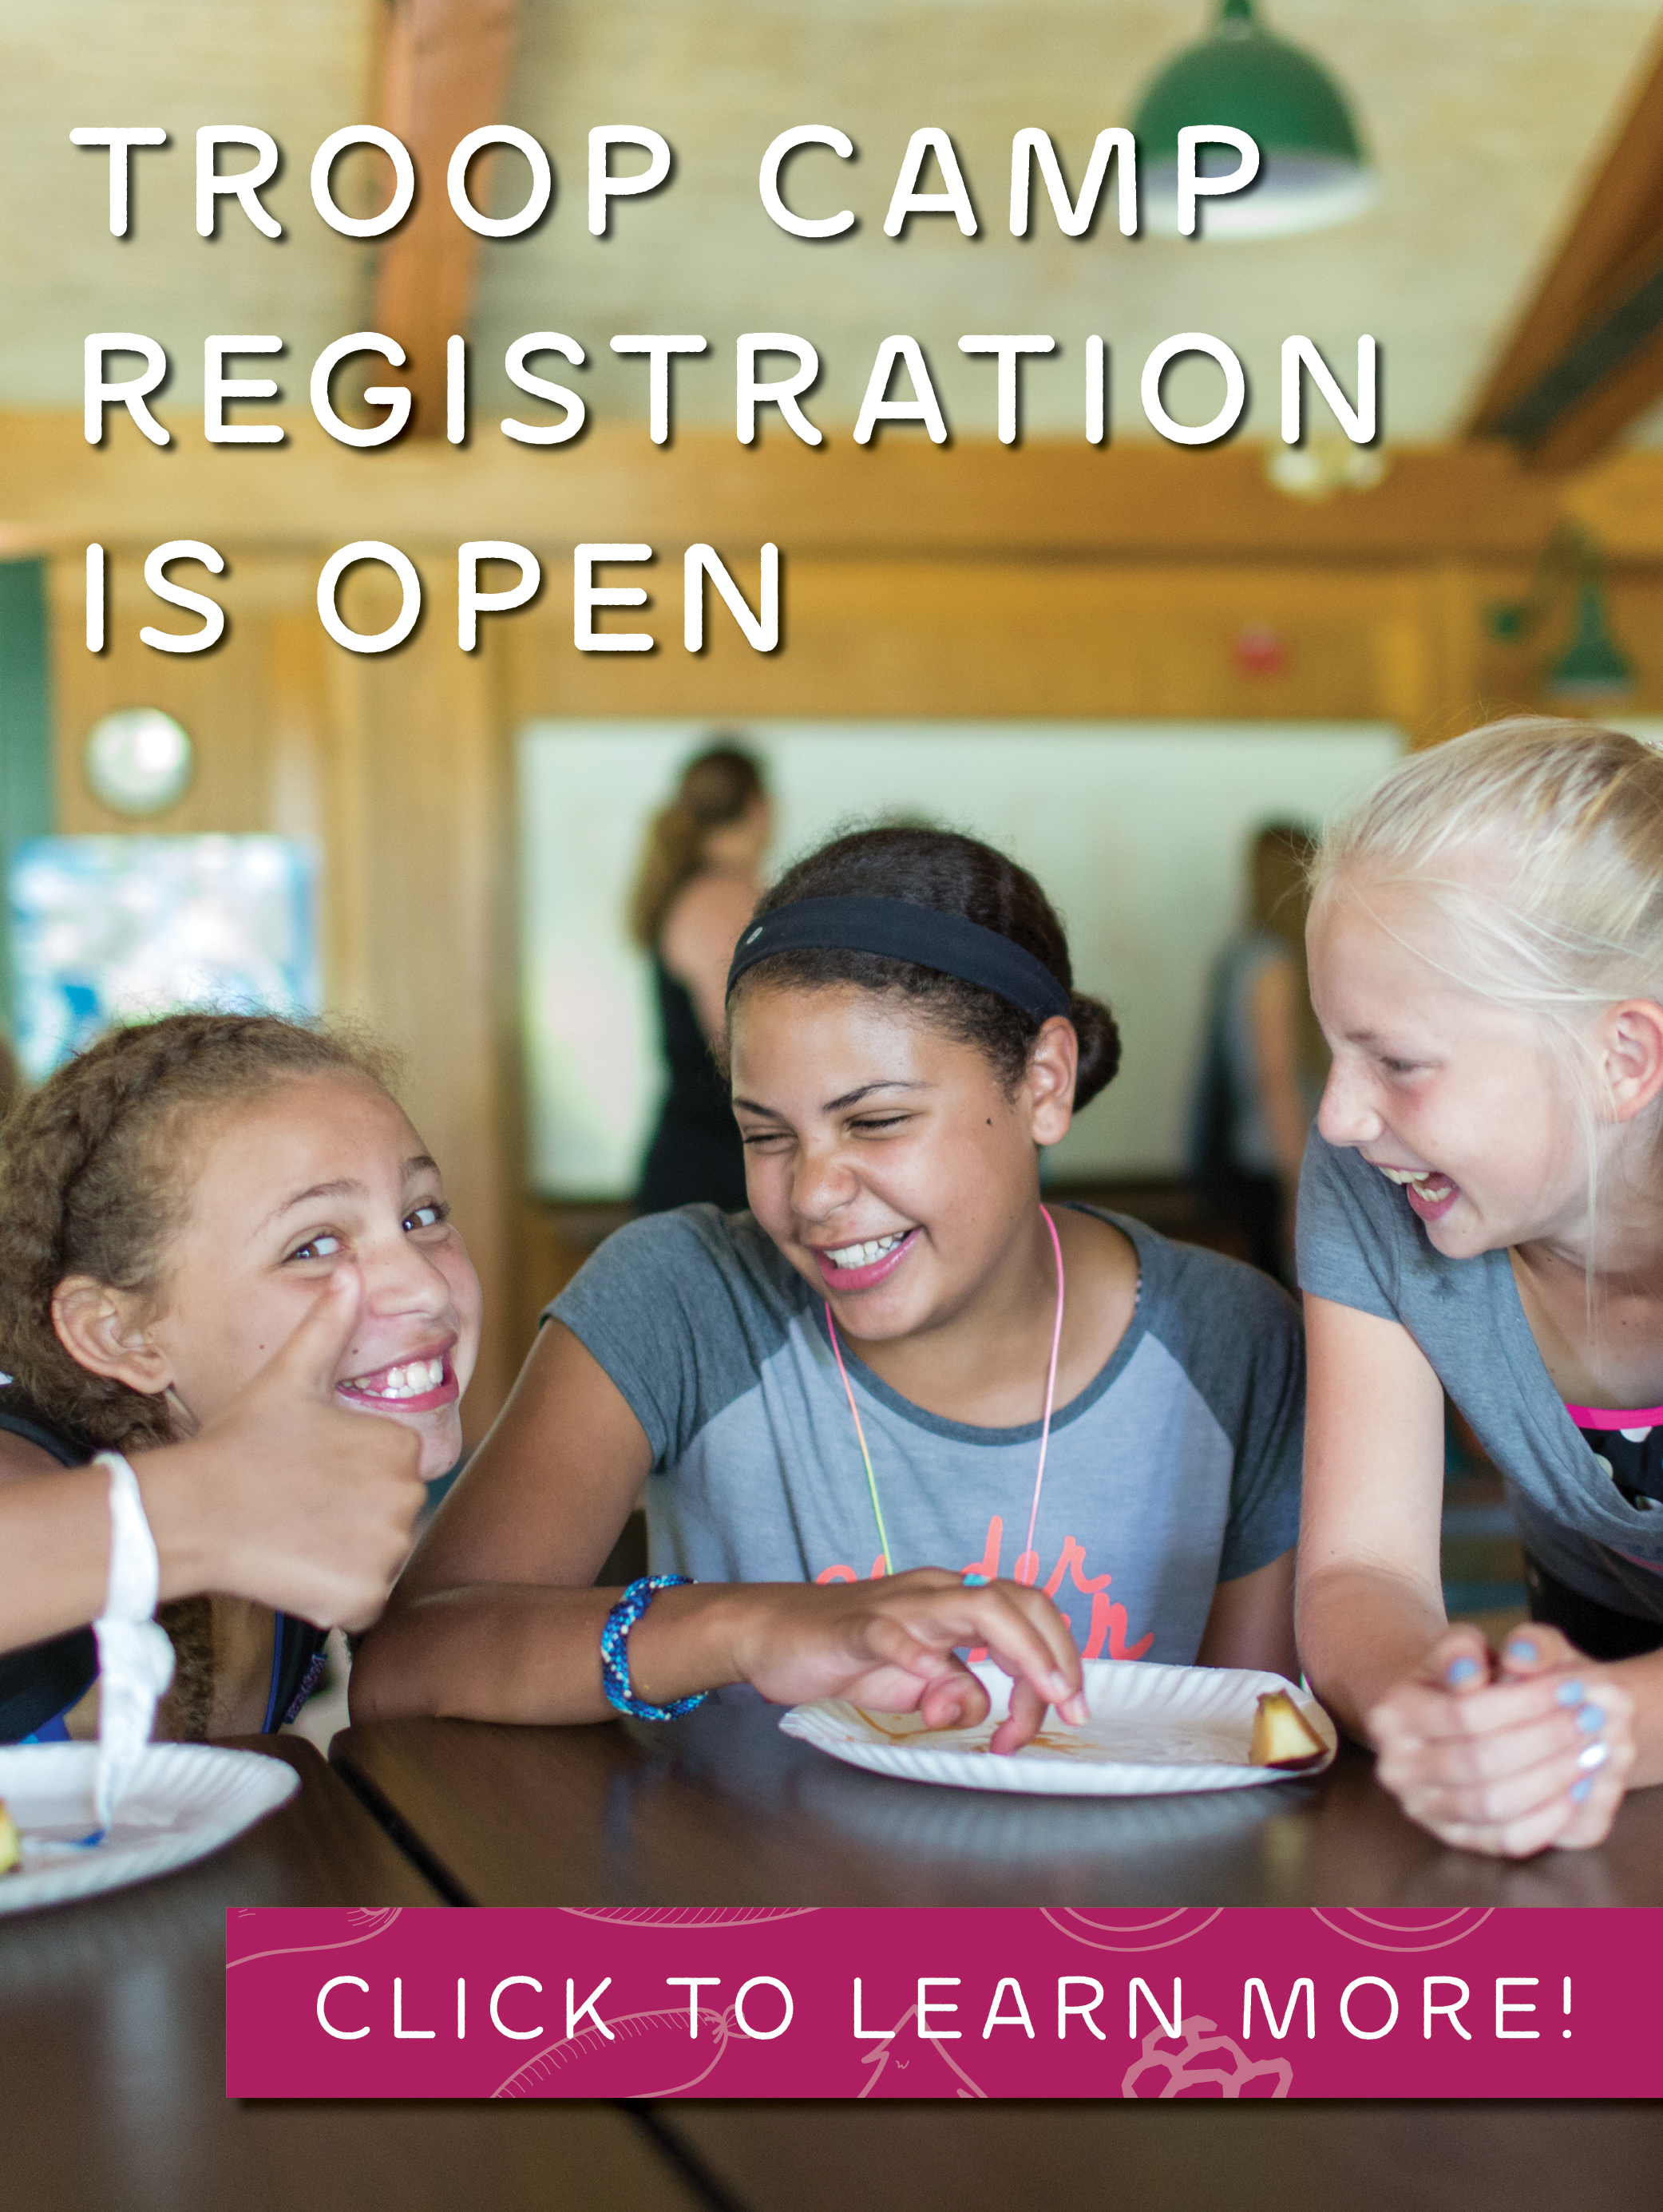 Girl Scout Troop Camp registration begins March 1st. Click to learn more.